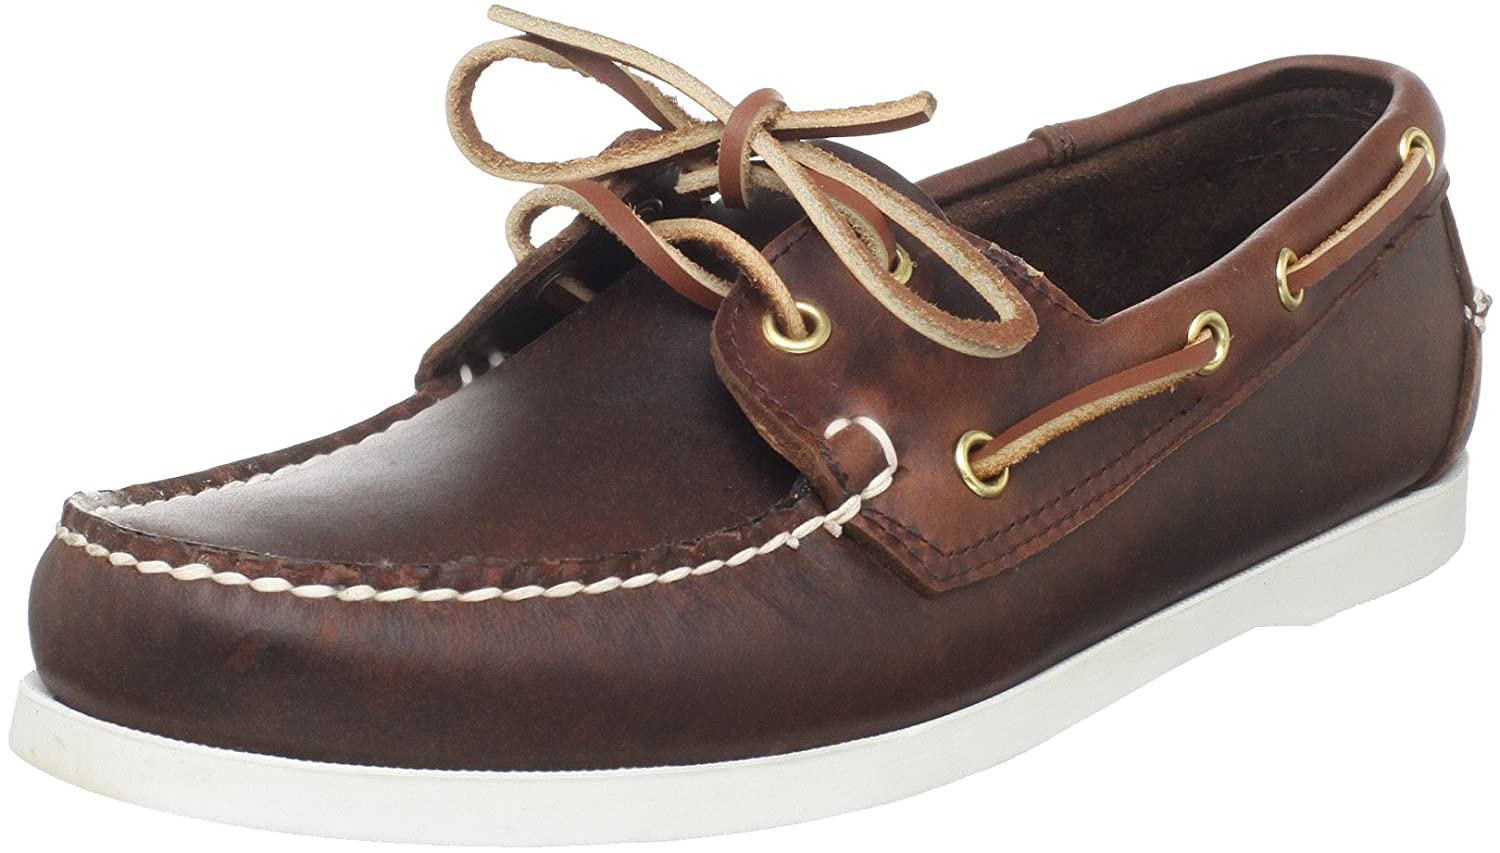 Island Surf Men's Dixon Boat Shoe